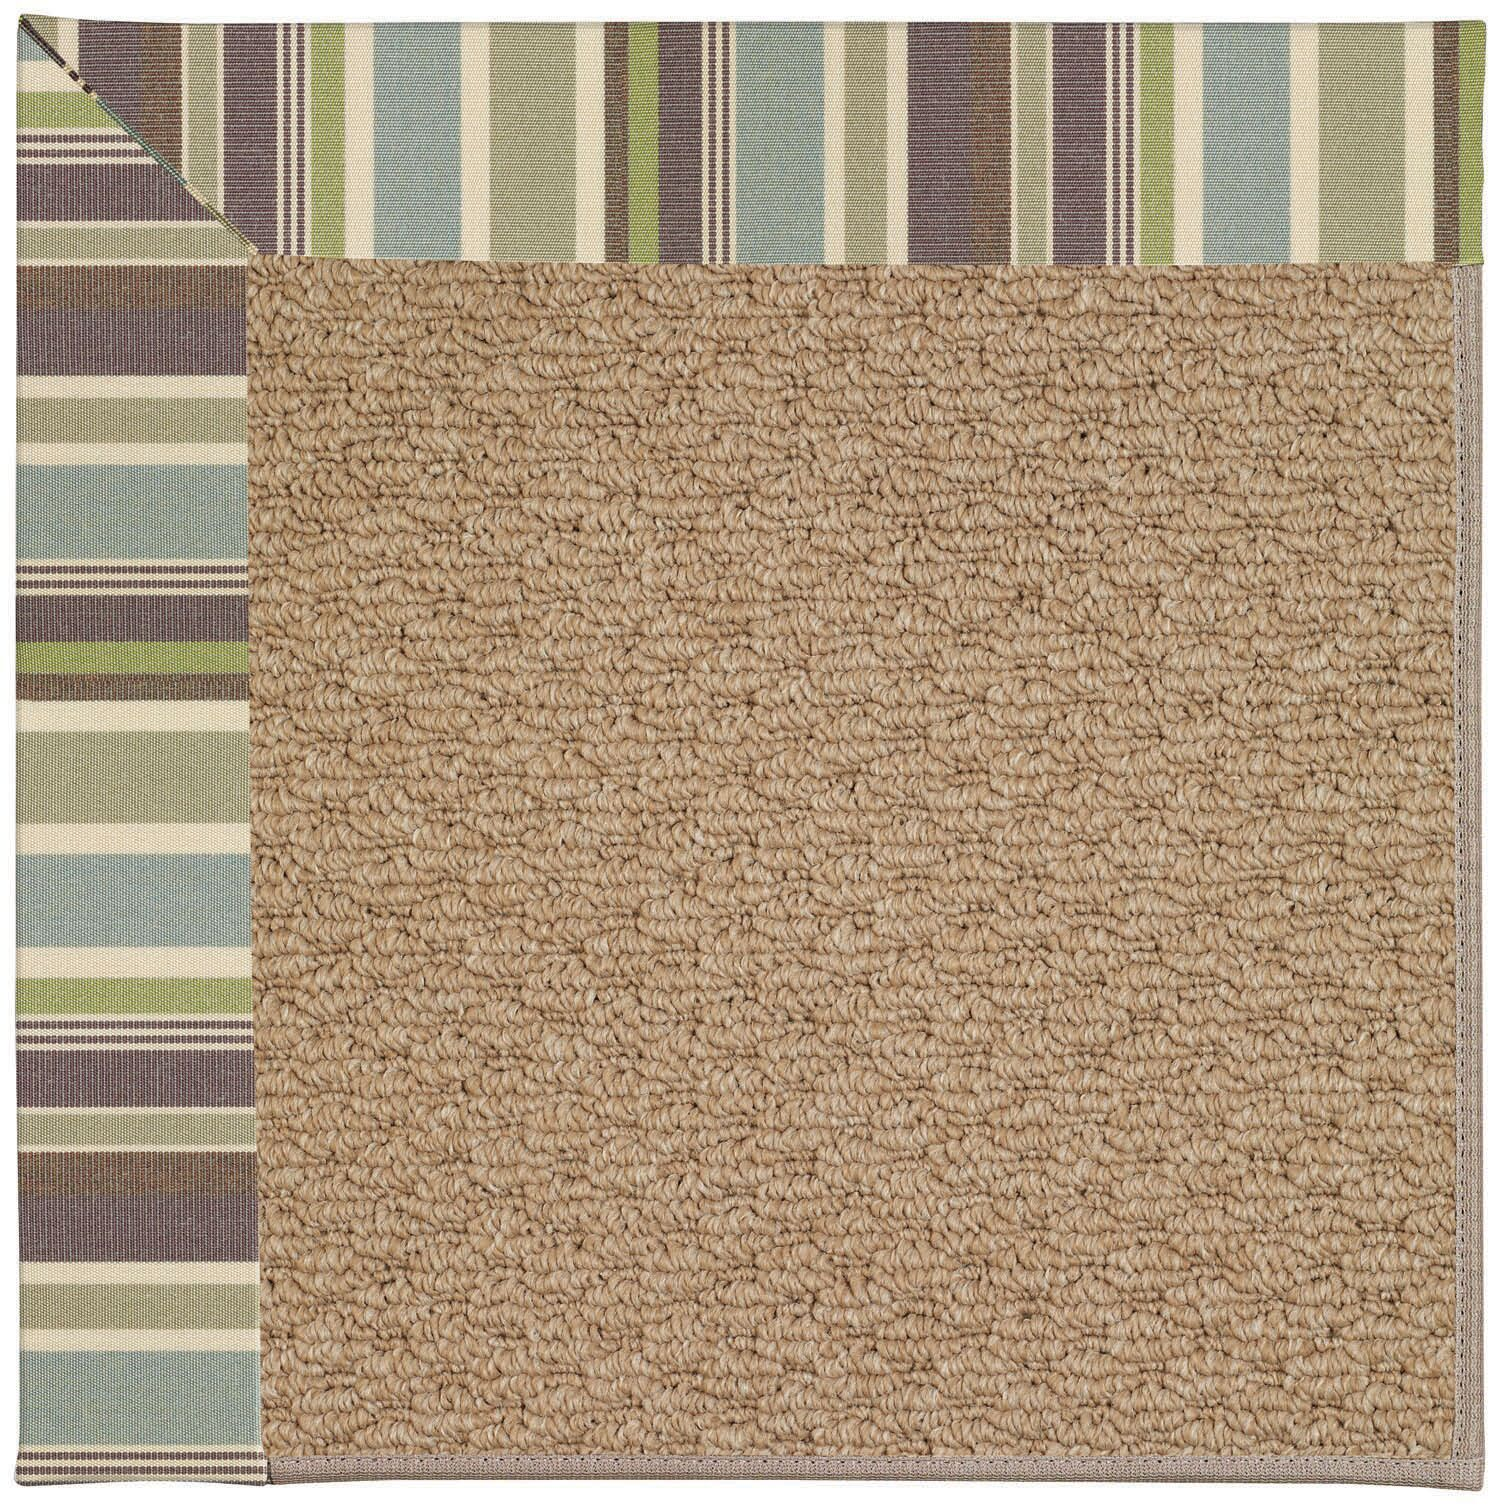 Lisle Machine Tufted Multi-colored/Brown Indoor/Outdoor Area Rug Rug Size: Rectangle 4' x 6'